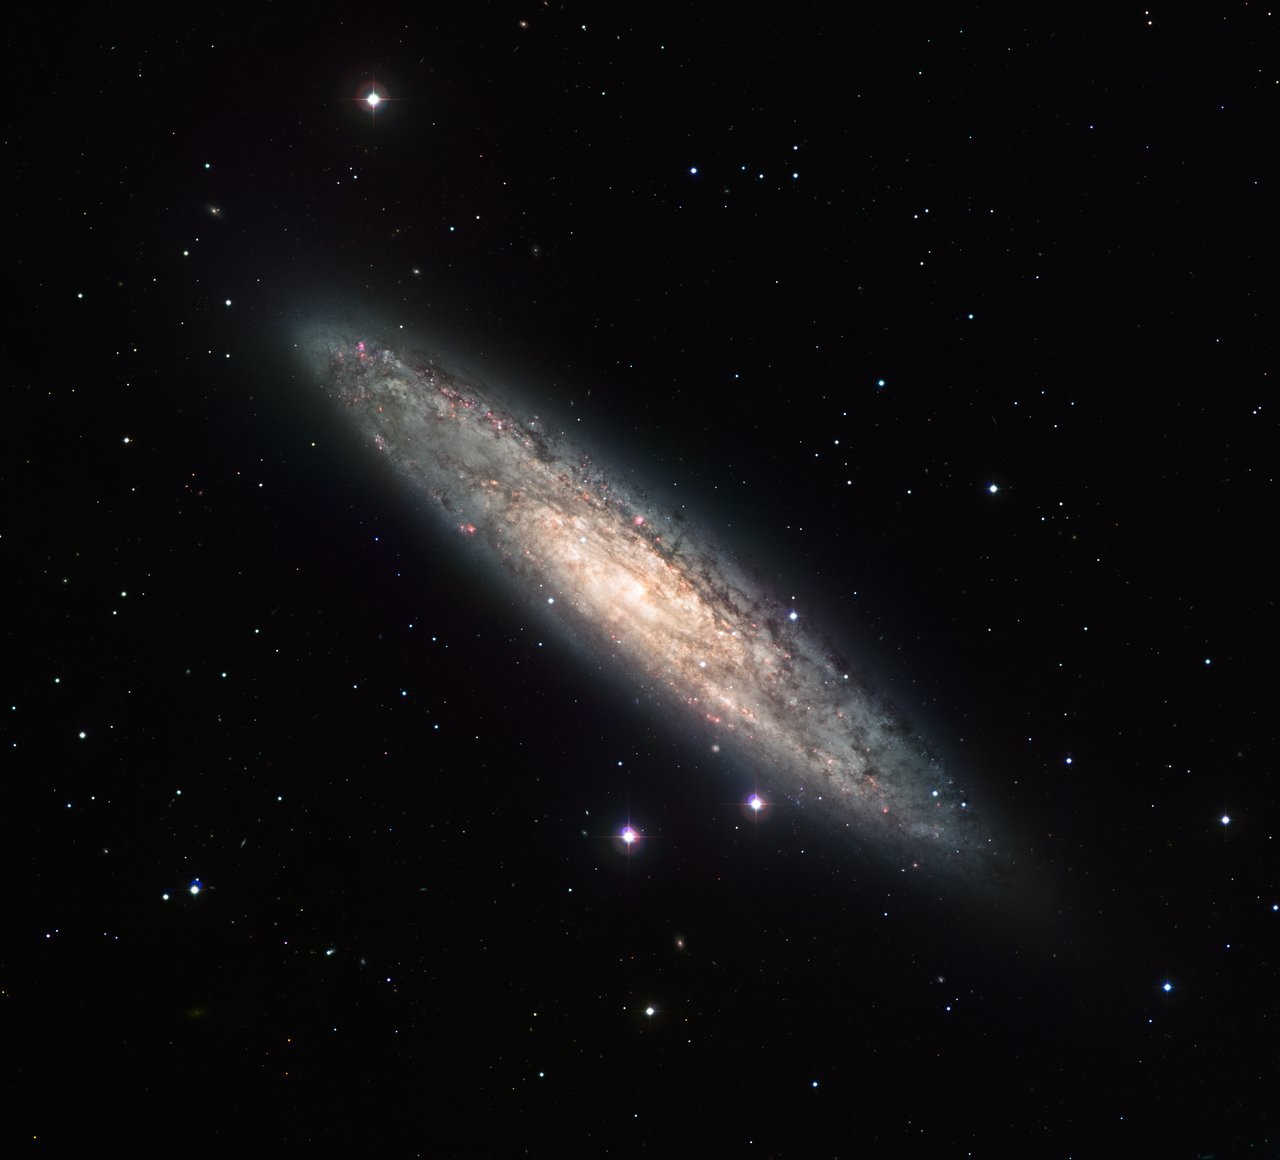 Measuring 70 000 light-years across and laying 13 million light-years away, the nearly edge-on spiral galaxy NGC 253 is revealed here in an image from the Wide Field Imager (WFI) on the MPG/ESO 2.2-metre telescope at the La Silla Observatory. The image is based on data obtained through four different filters (R, V, H-alpha and OIII). North is up and East to the left. The field of view is 30 arcminutes.